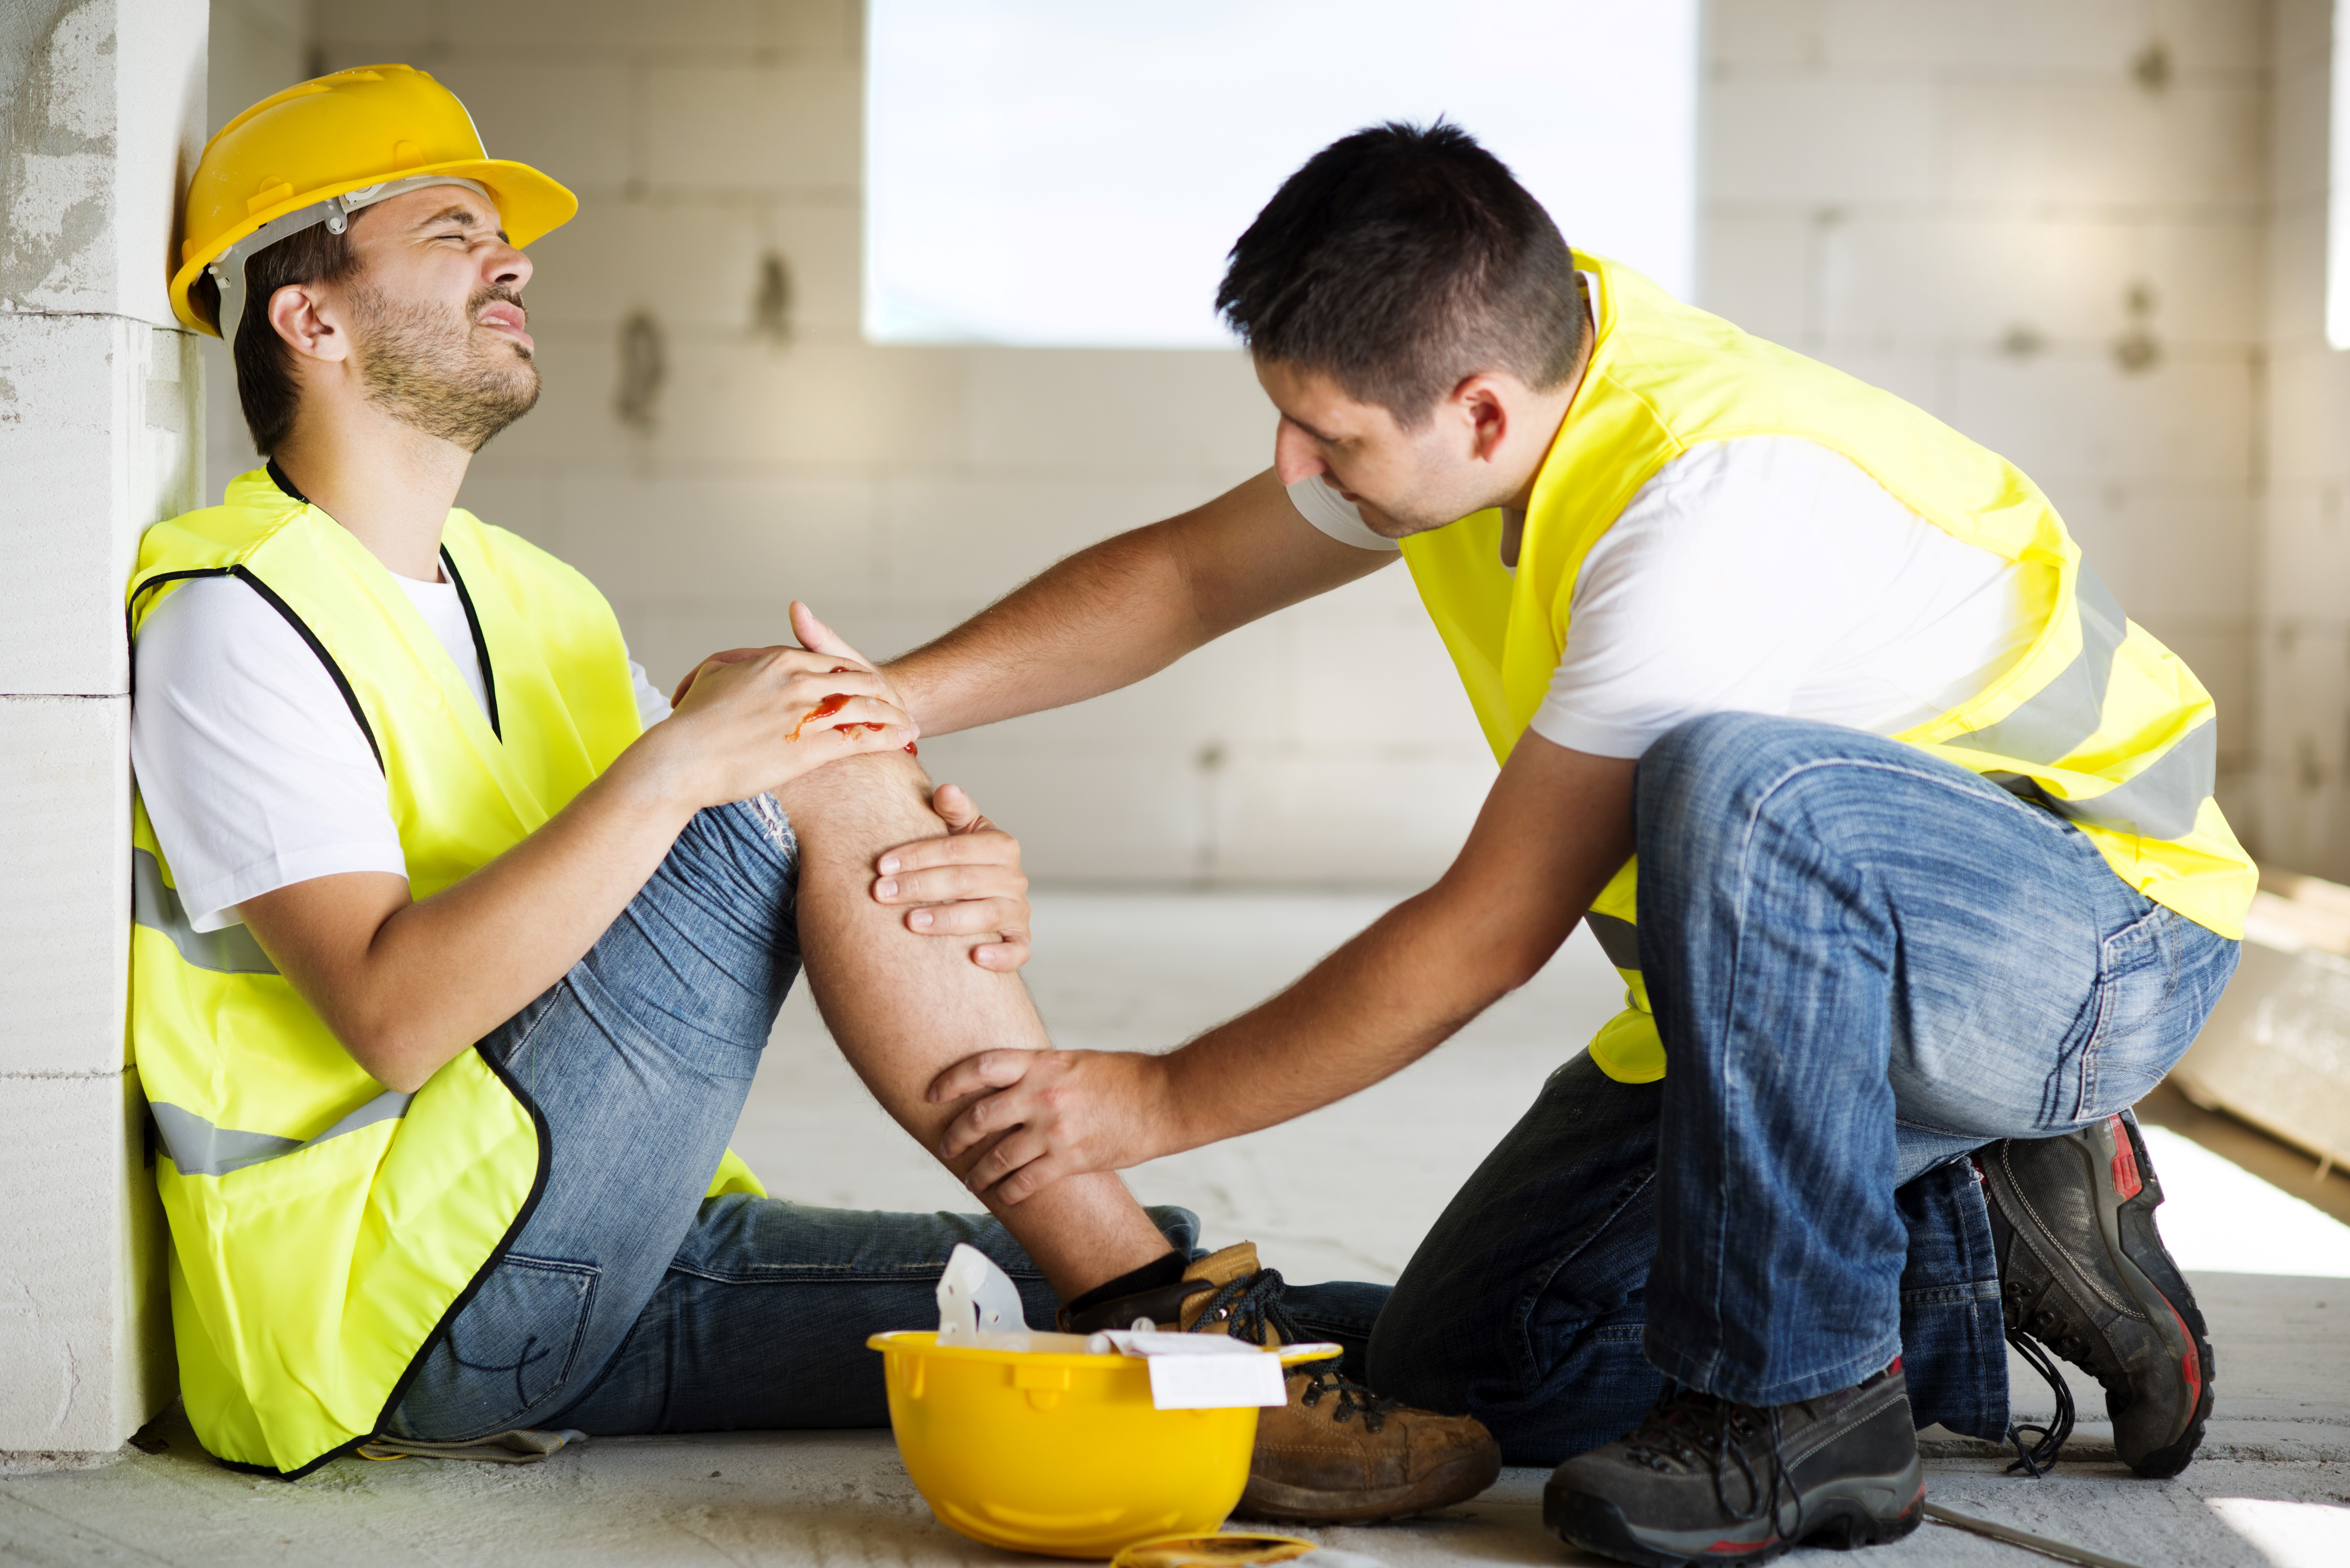 How to Avoid a Workplace Injury